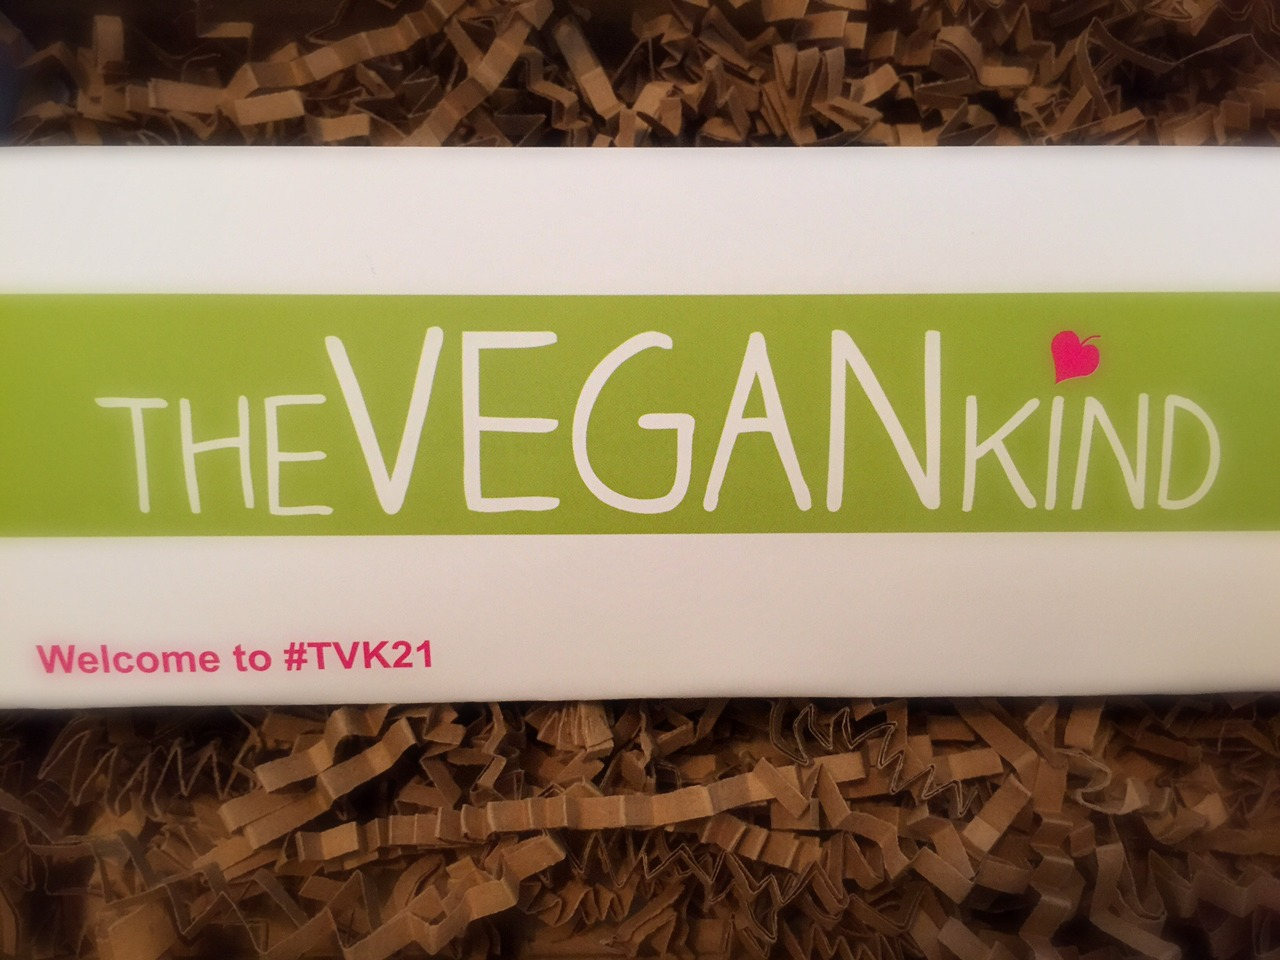 The Vegan Kind TVK21